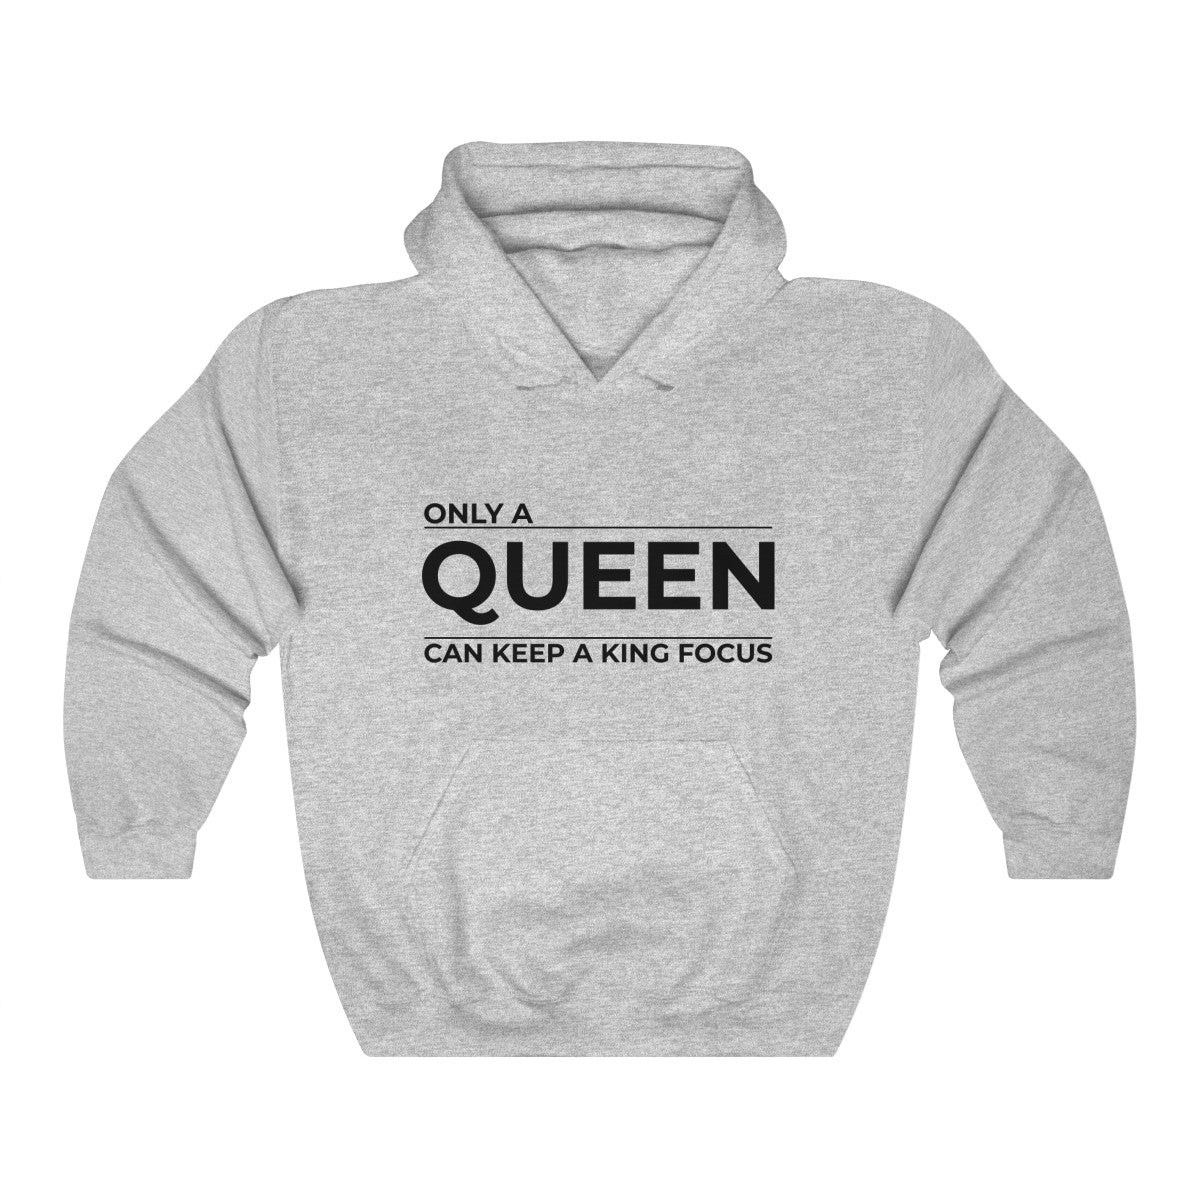 Wonderful Hoodies King and Queen